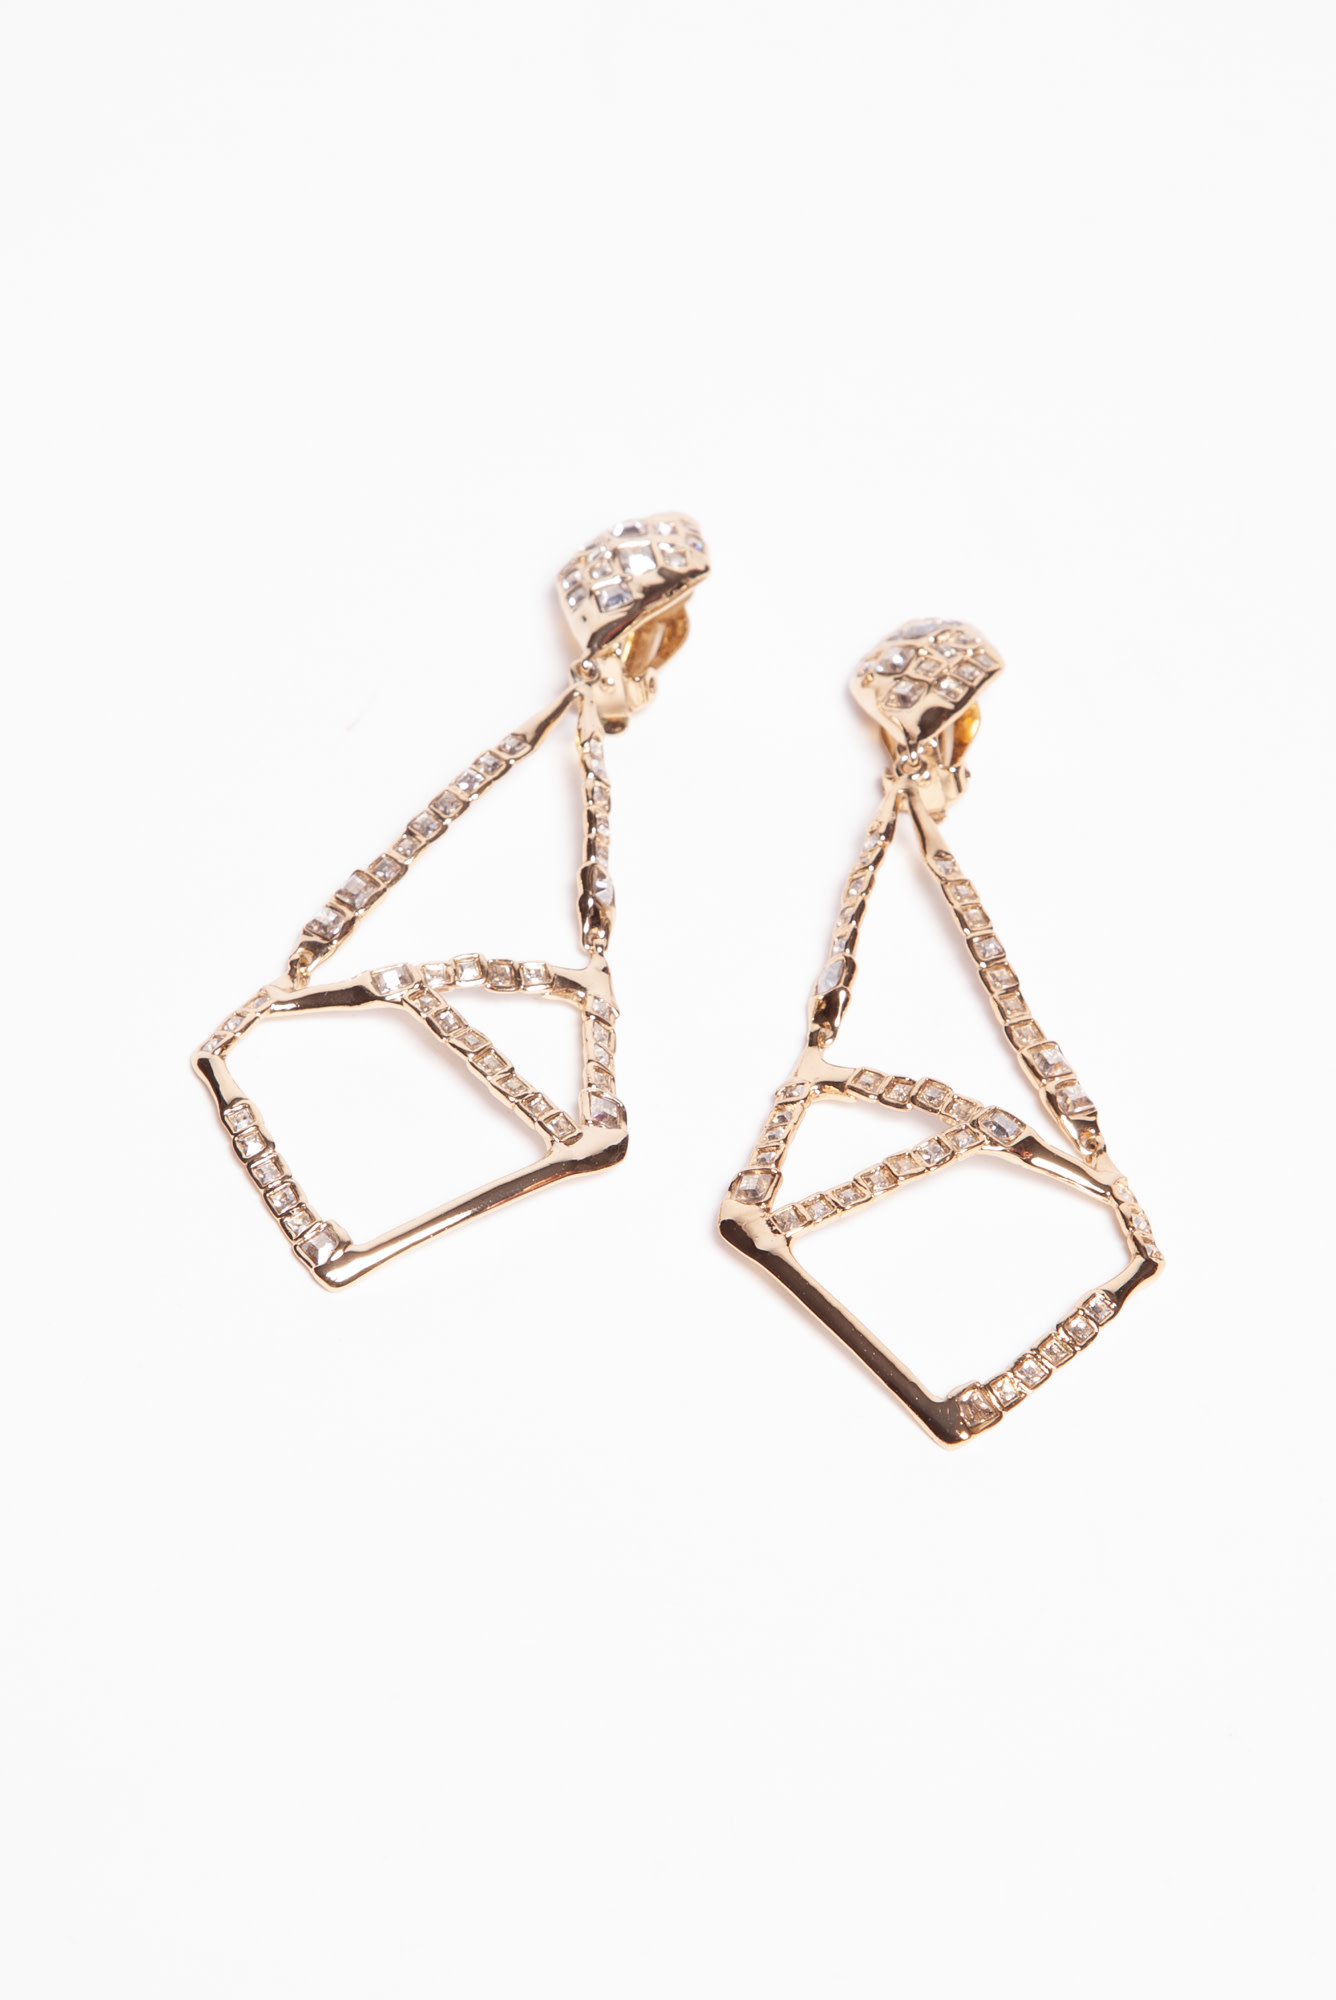 Alexis Bittar GEOMETRIC-SHAPED GOLD EARRINGS SET WITH STONE